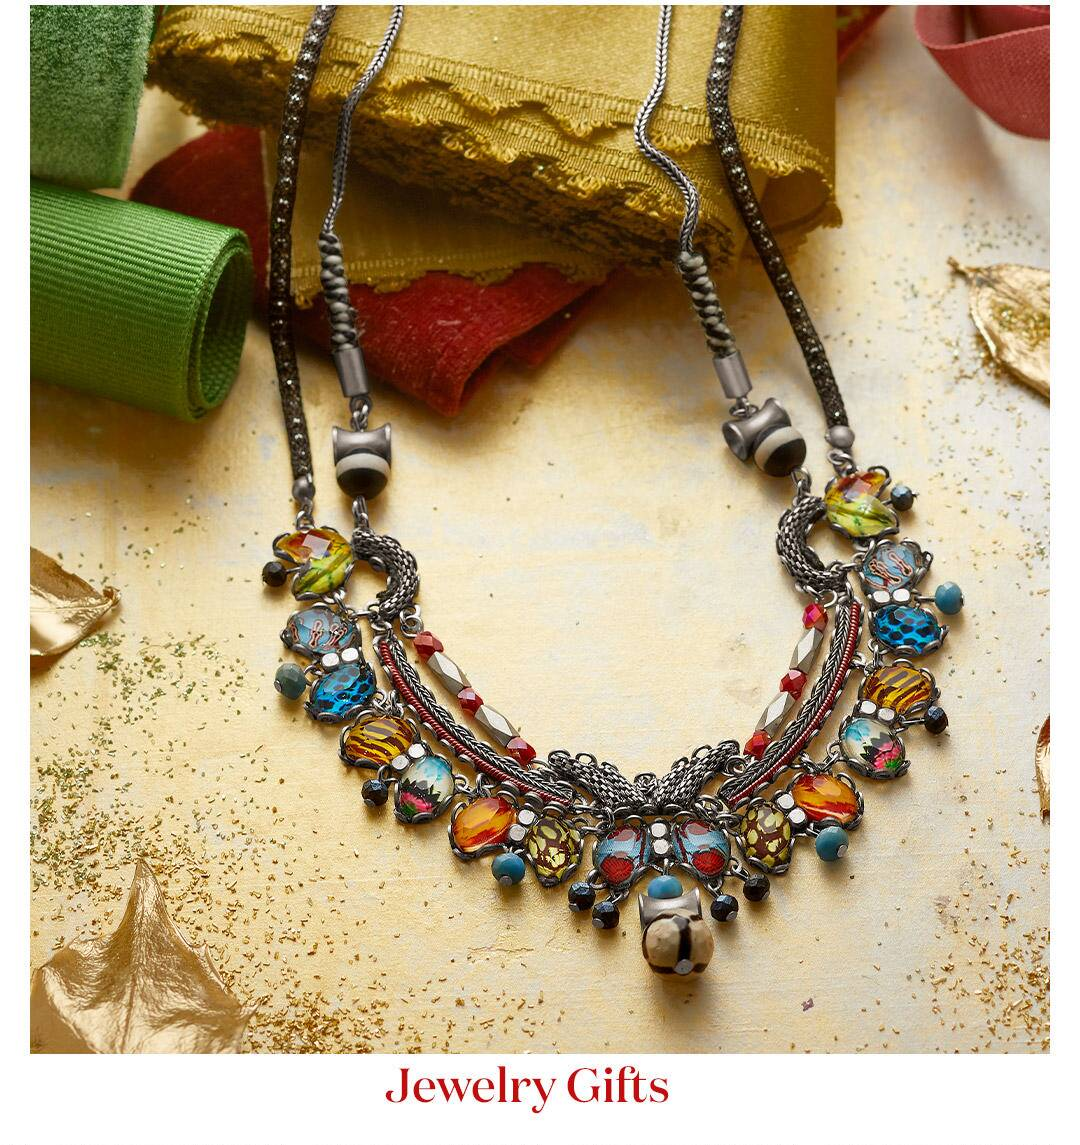 Jewelry Gifts